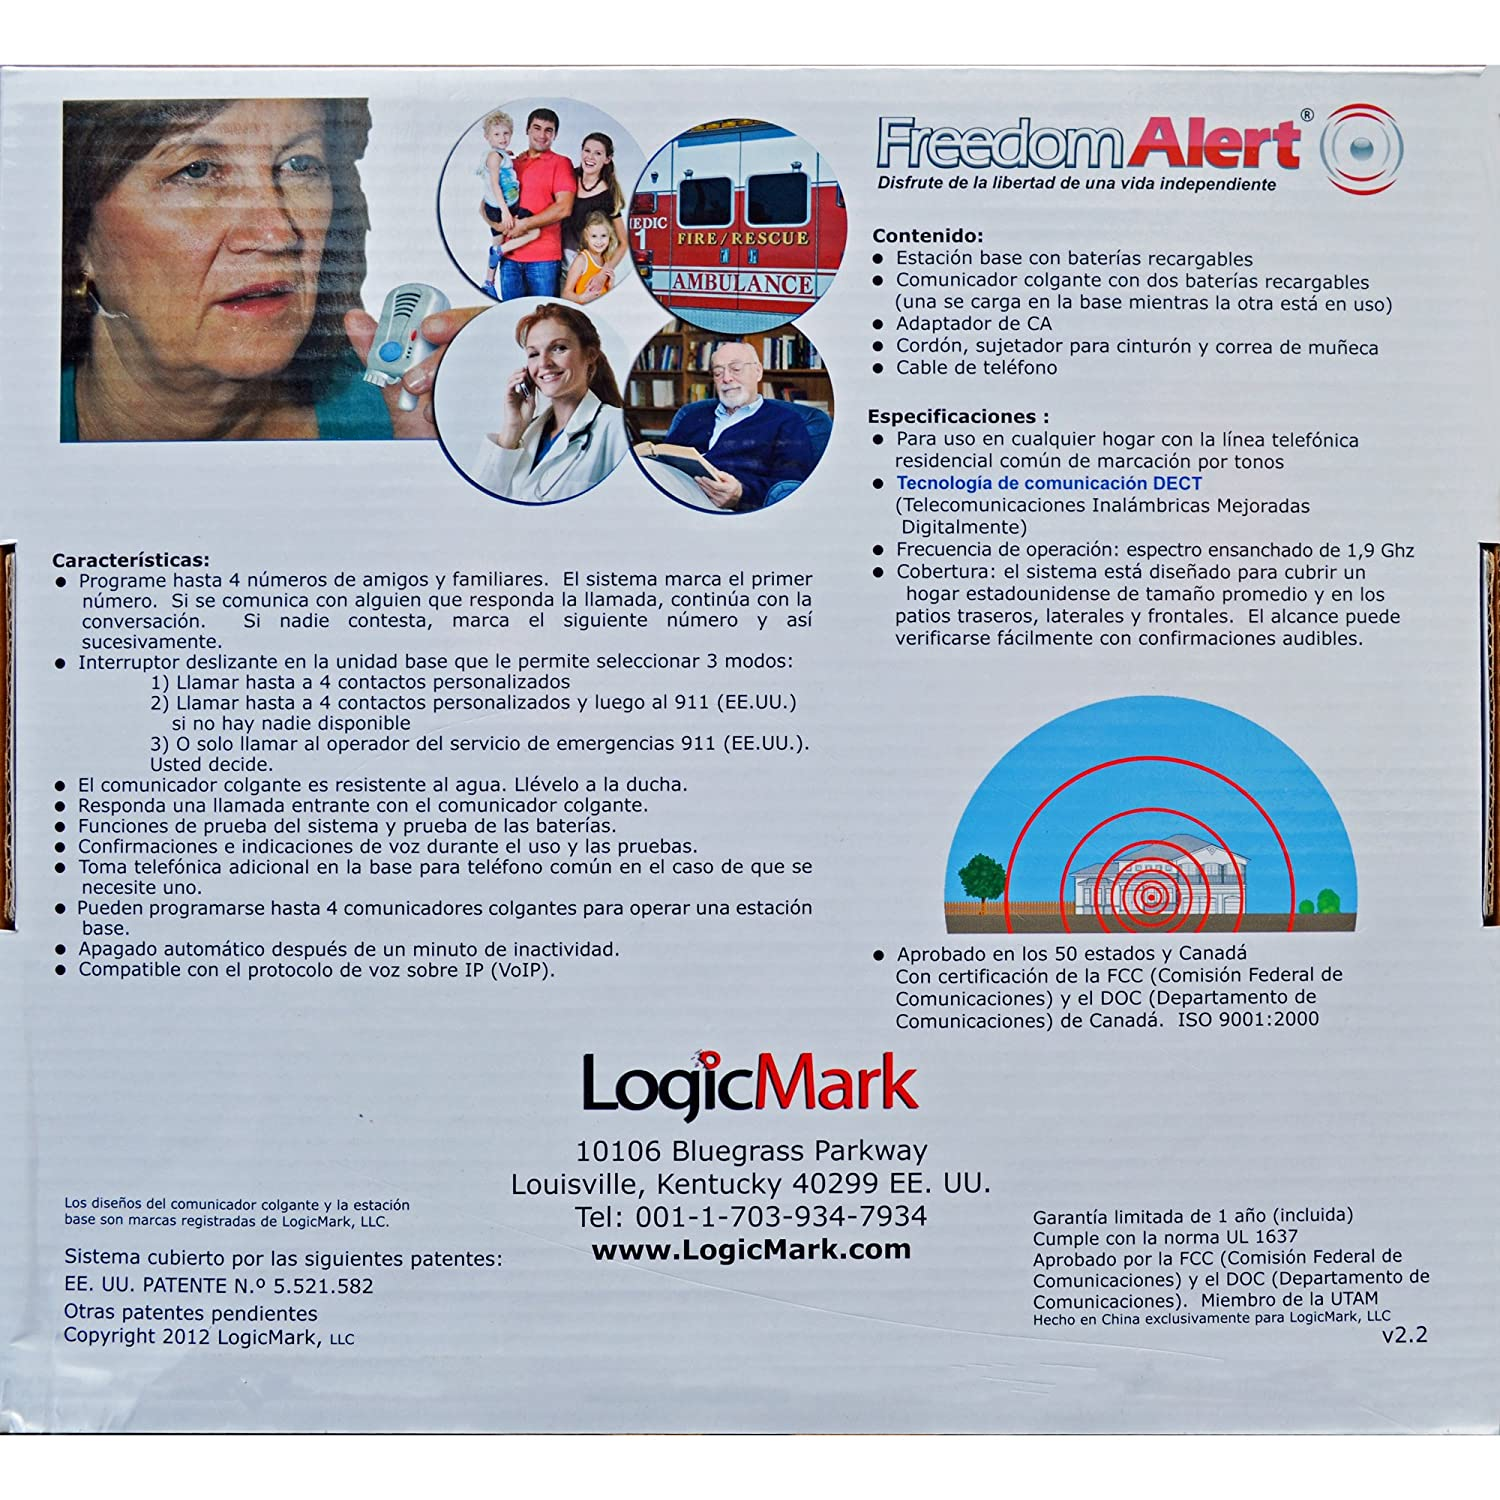 Amazon.com: Logicmark Freedomalert Spanish Speaking Emergency Help System: Health & Personal Care